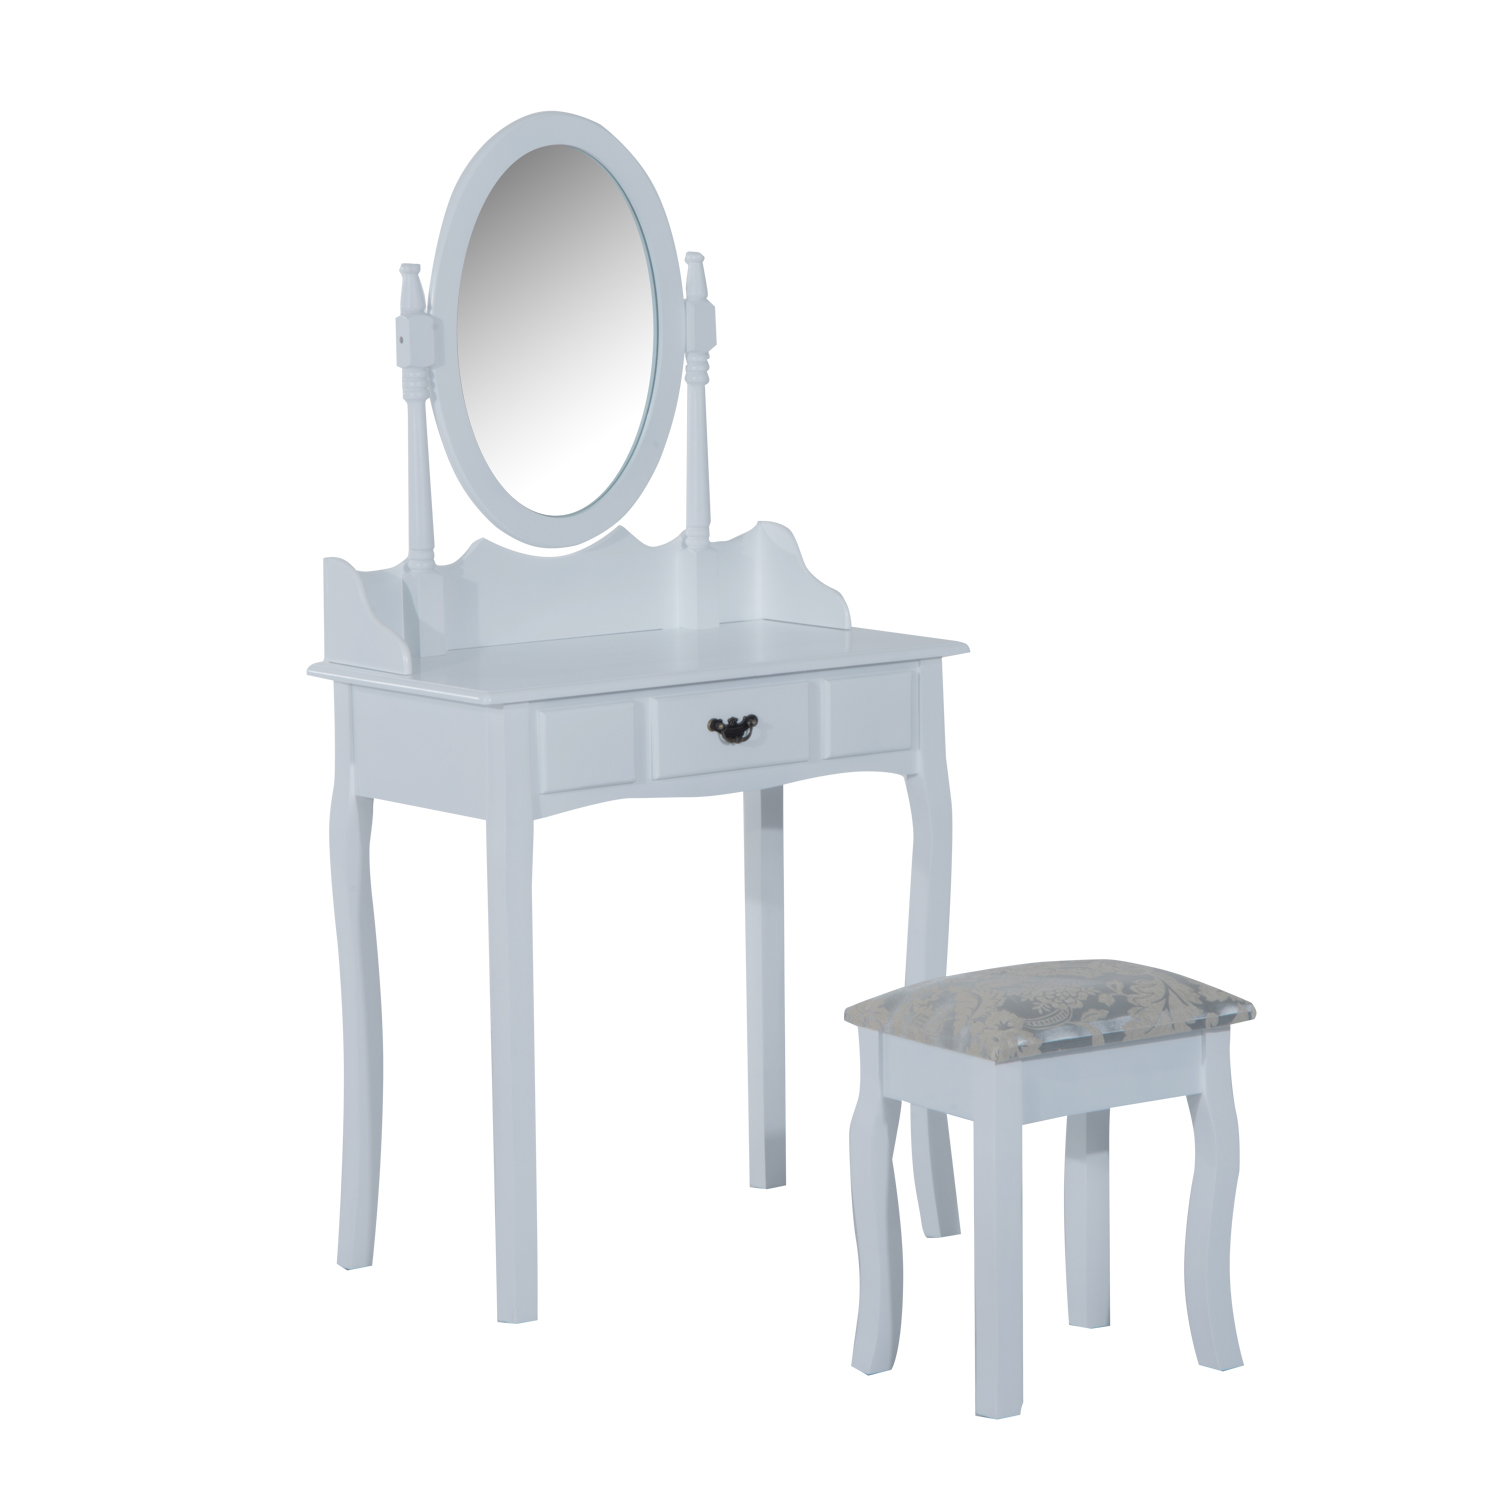 Remarkable Cad 179 99 Homcom Modern Vanity Dressing Table Stool Set Andrewgaddart Wooden Chair Designs For Living Room Andrewgaddartcom